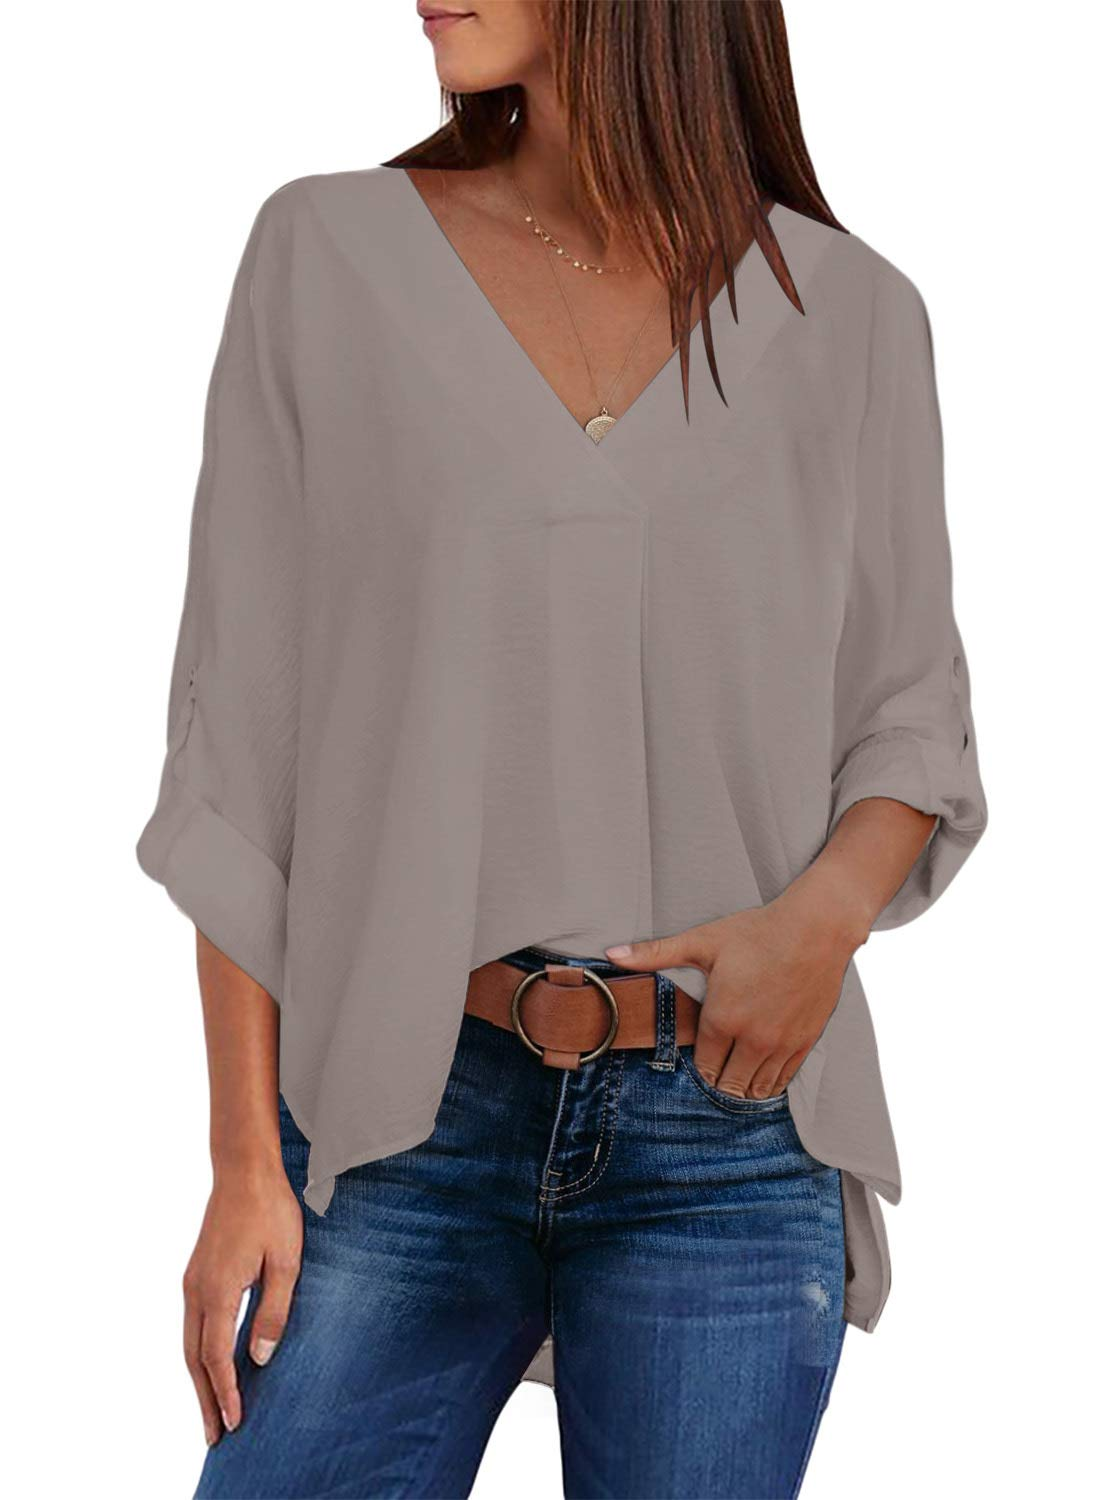 Elapsy Womens Casual 3/4 Sleeve High Low Hem Shirt V Neck Loose Blouses and Tops